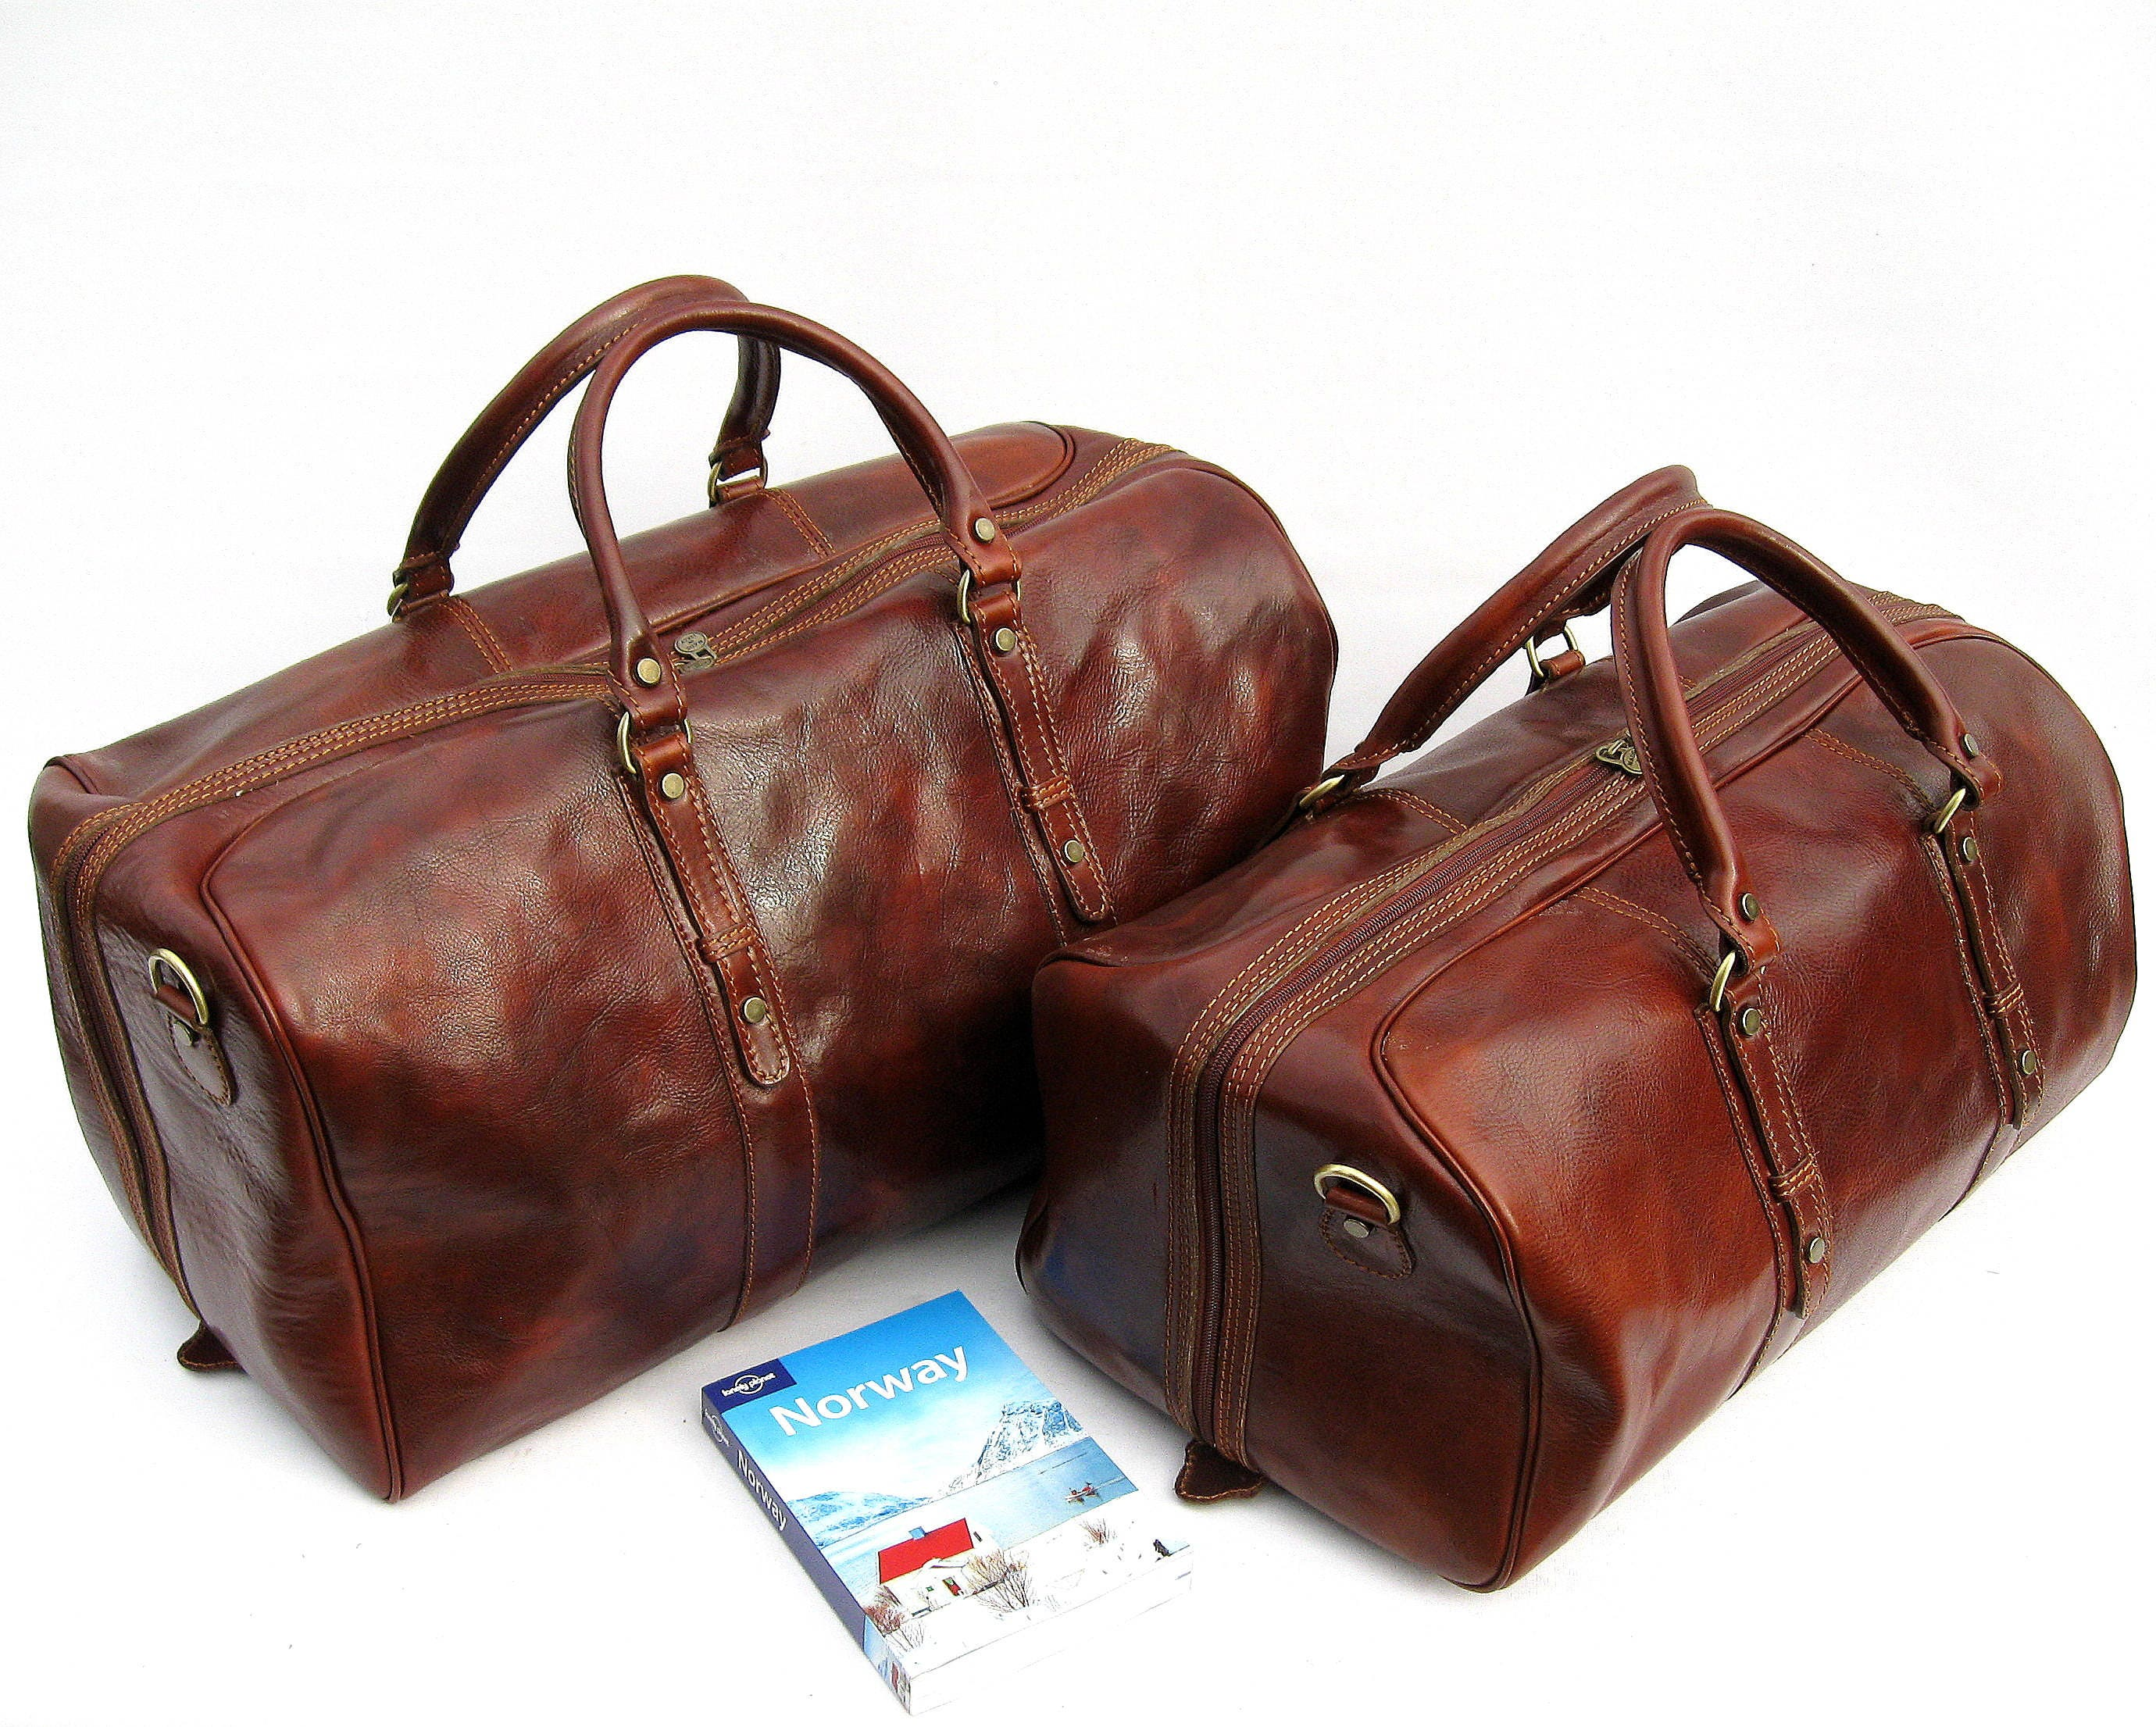 37768eb7dfbd Leather Travel Bag Weekender Set Made In Italy